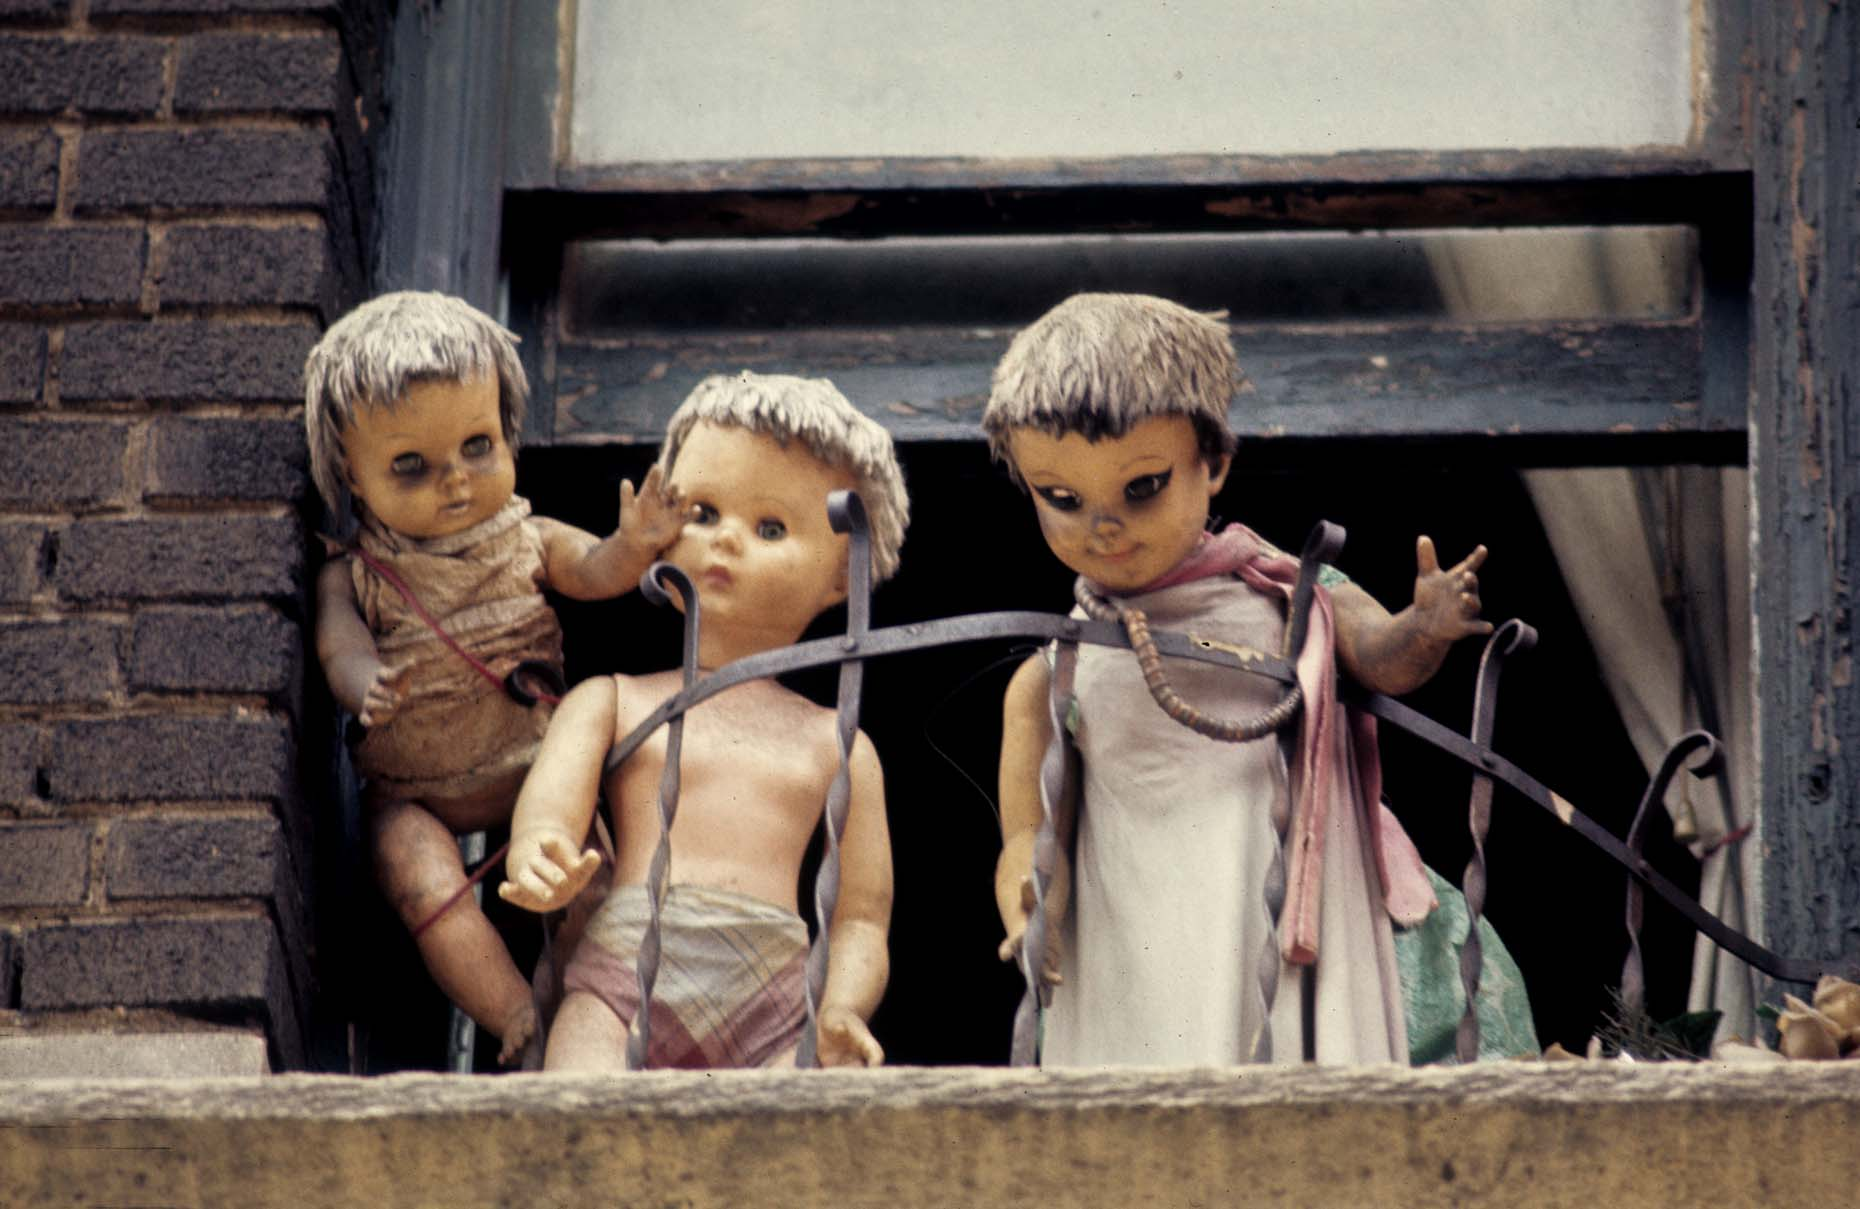 17_Dolls, South Bronx, 1970_